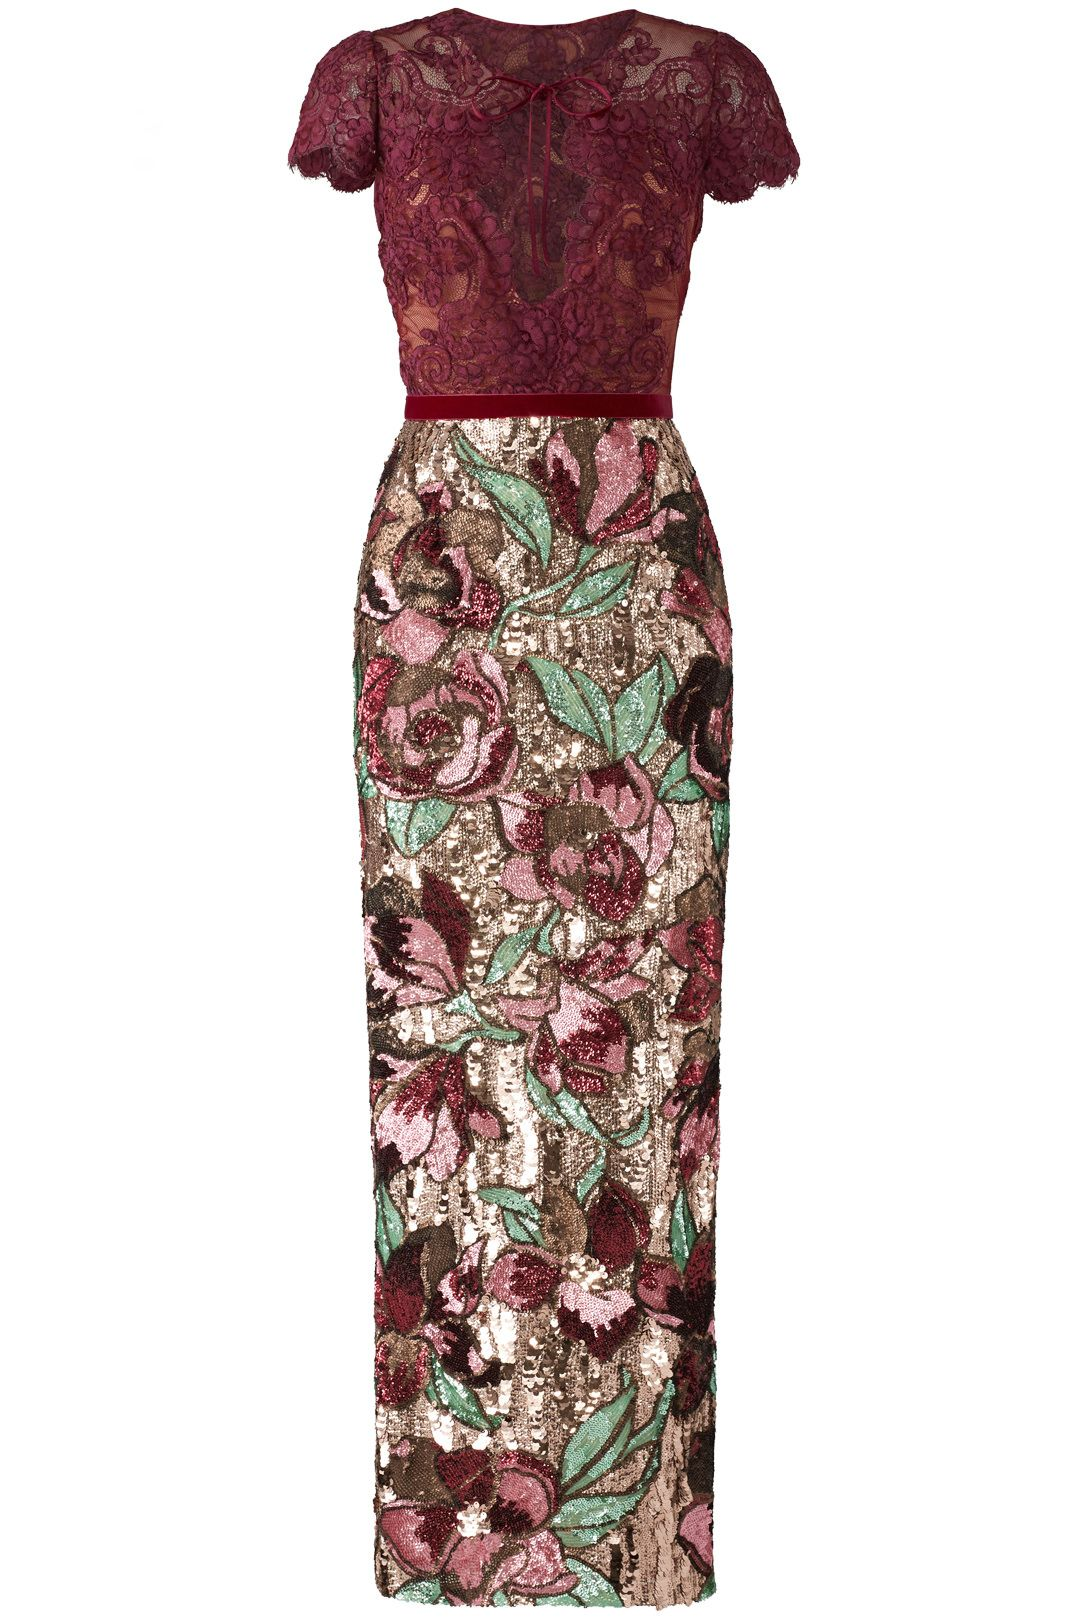 d1097a1dfbcd Artwork Sequin Dress by Marchesa Notte for $130 - $150 | Rent the Runway